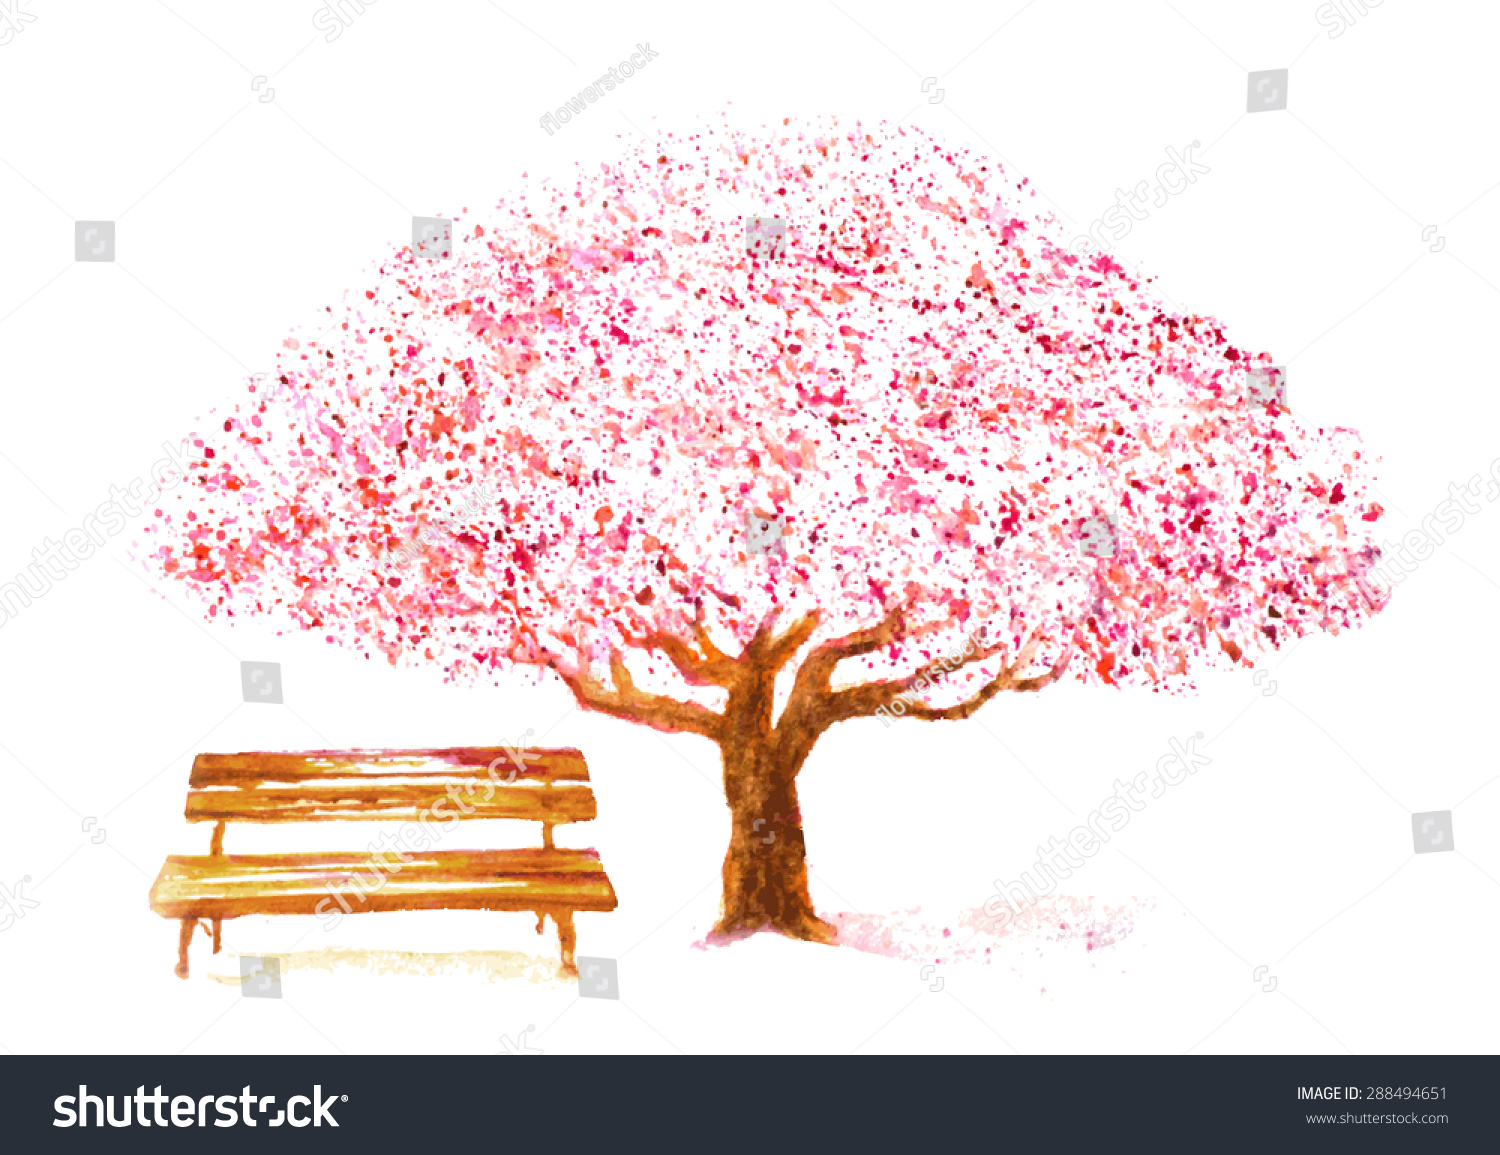 Tree Drawing With Watercolor Watercolor Hand Drawn Cherry Tree Bench Stock Vector